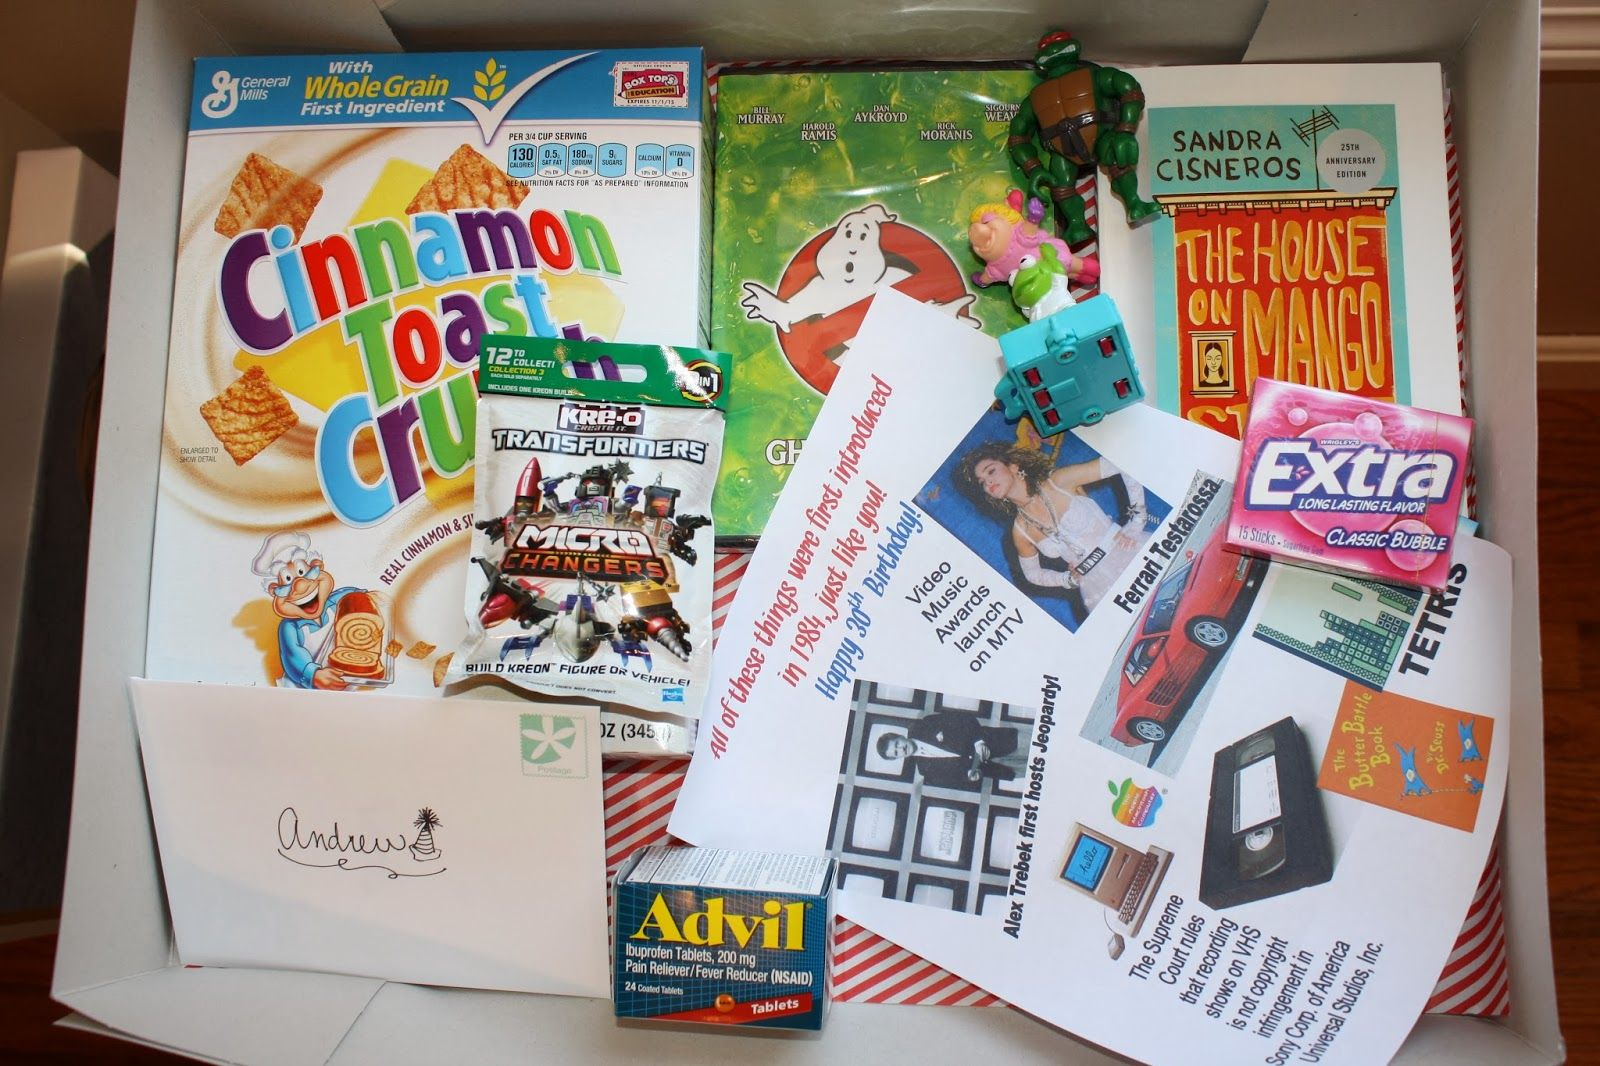 Gift Idea For A 30th Birthday In 2014 Give Box Of Things From 1984